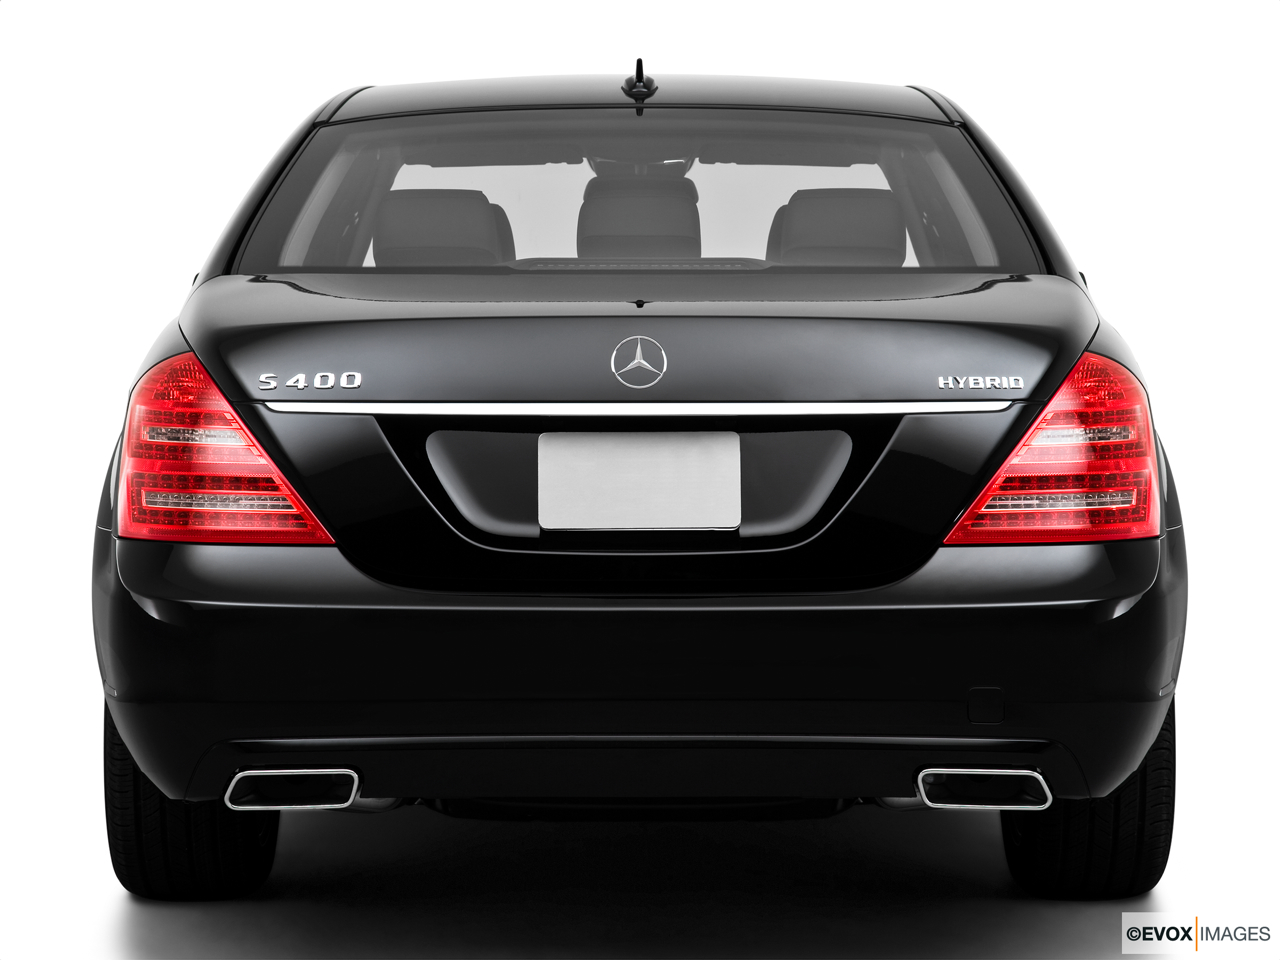 2010 Mercedes-Benz S-Class Hybrid S400 Low/wide rear.